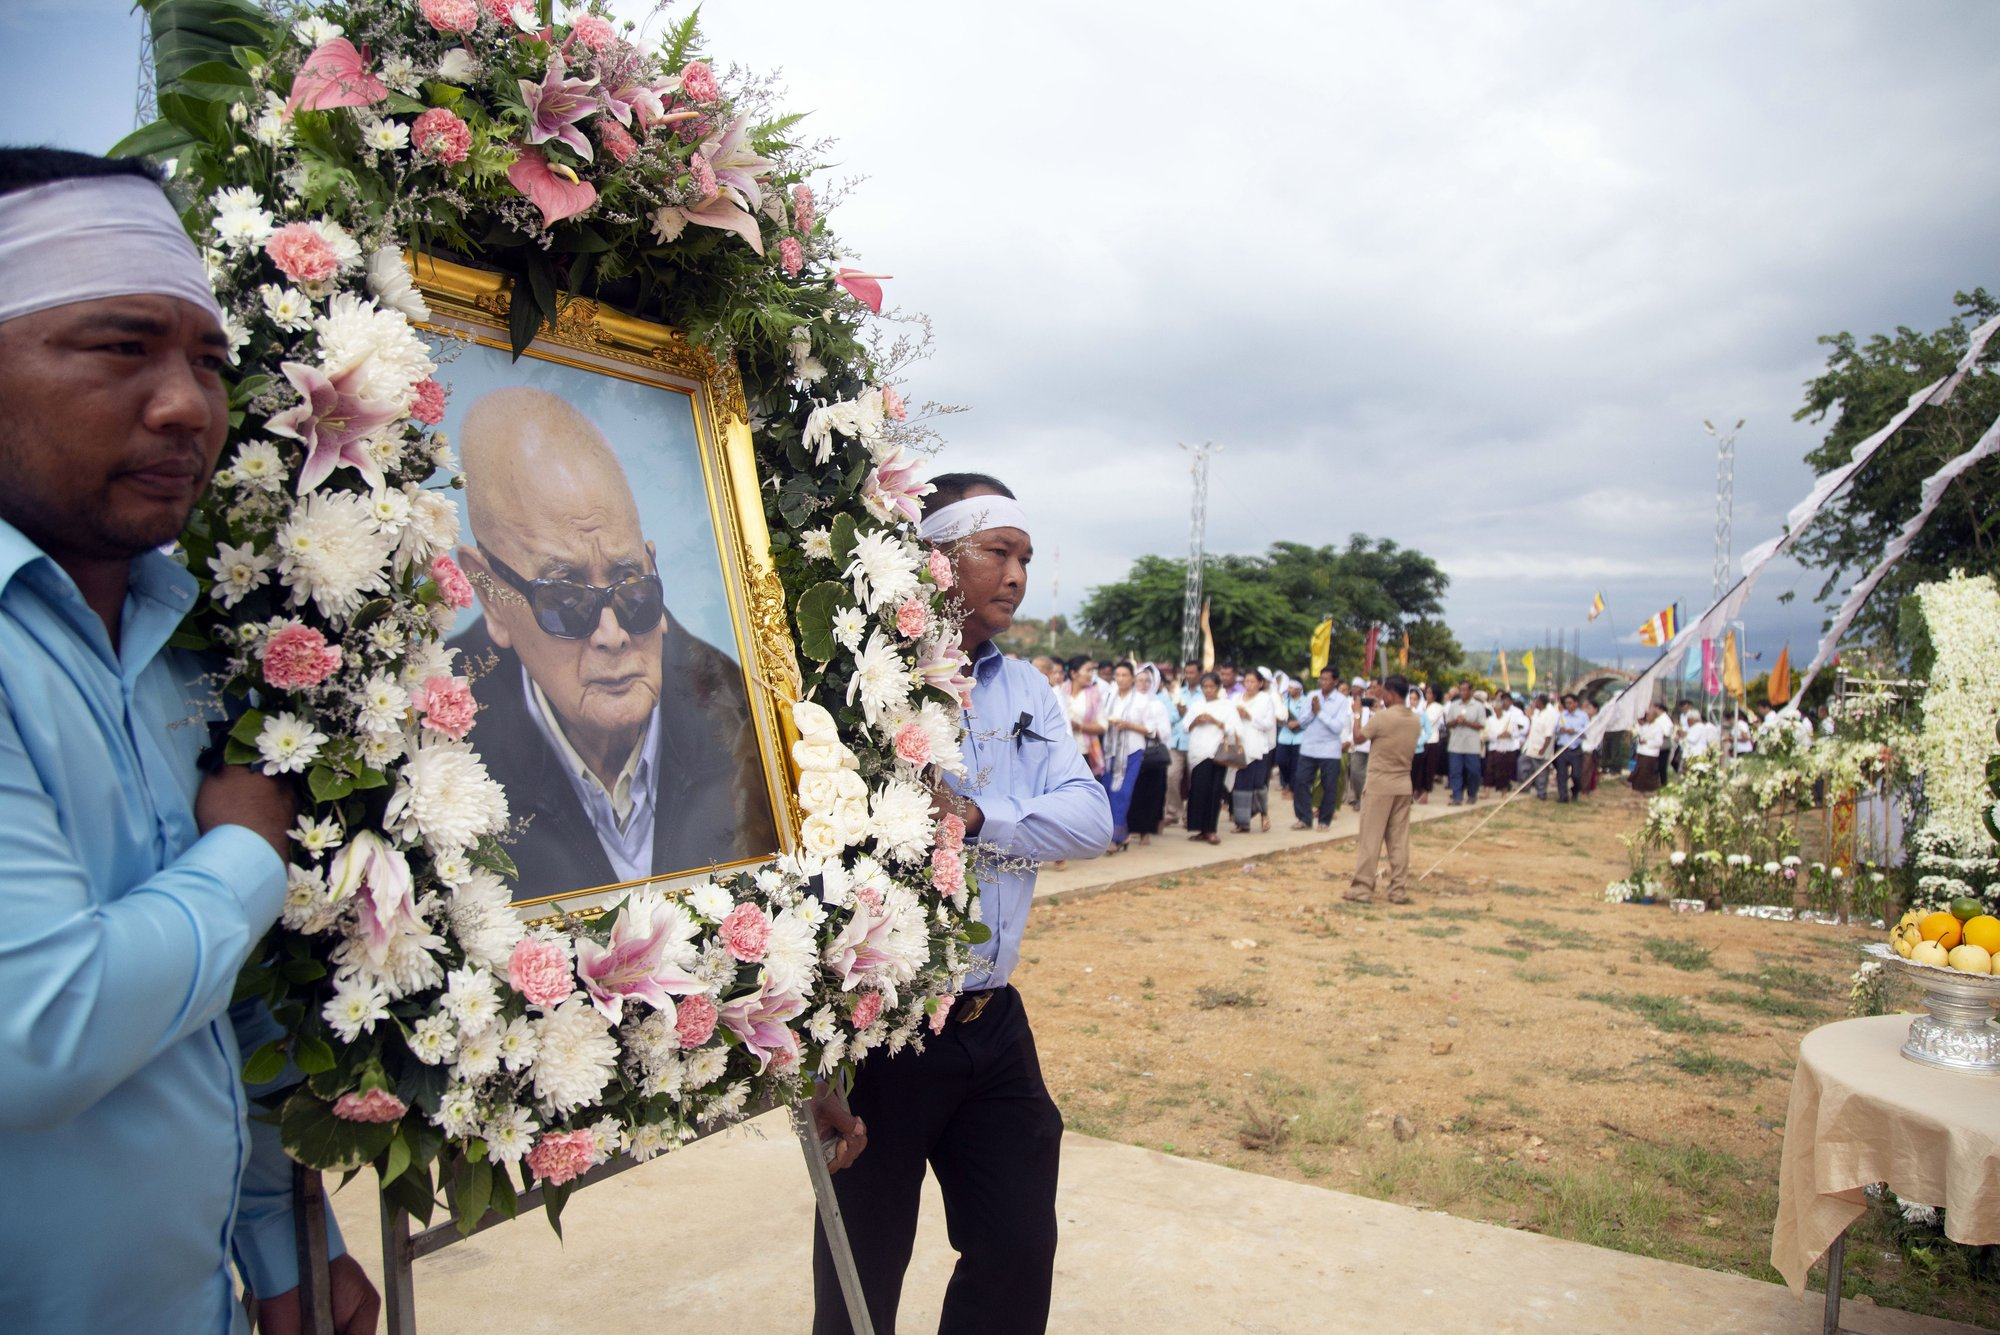 Khmer Rouge ideologue cremated, appeal may be stopped